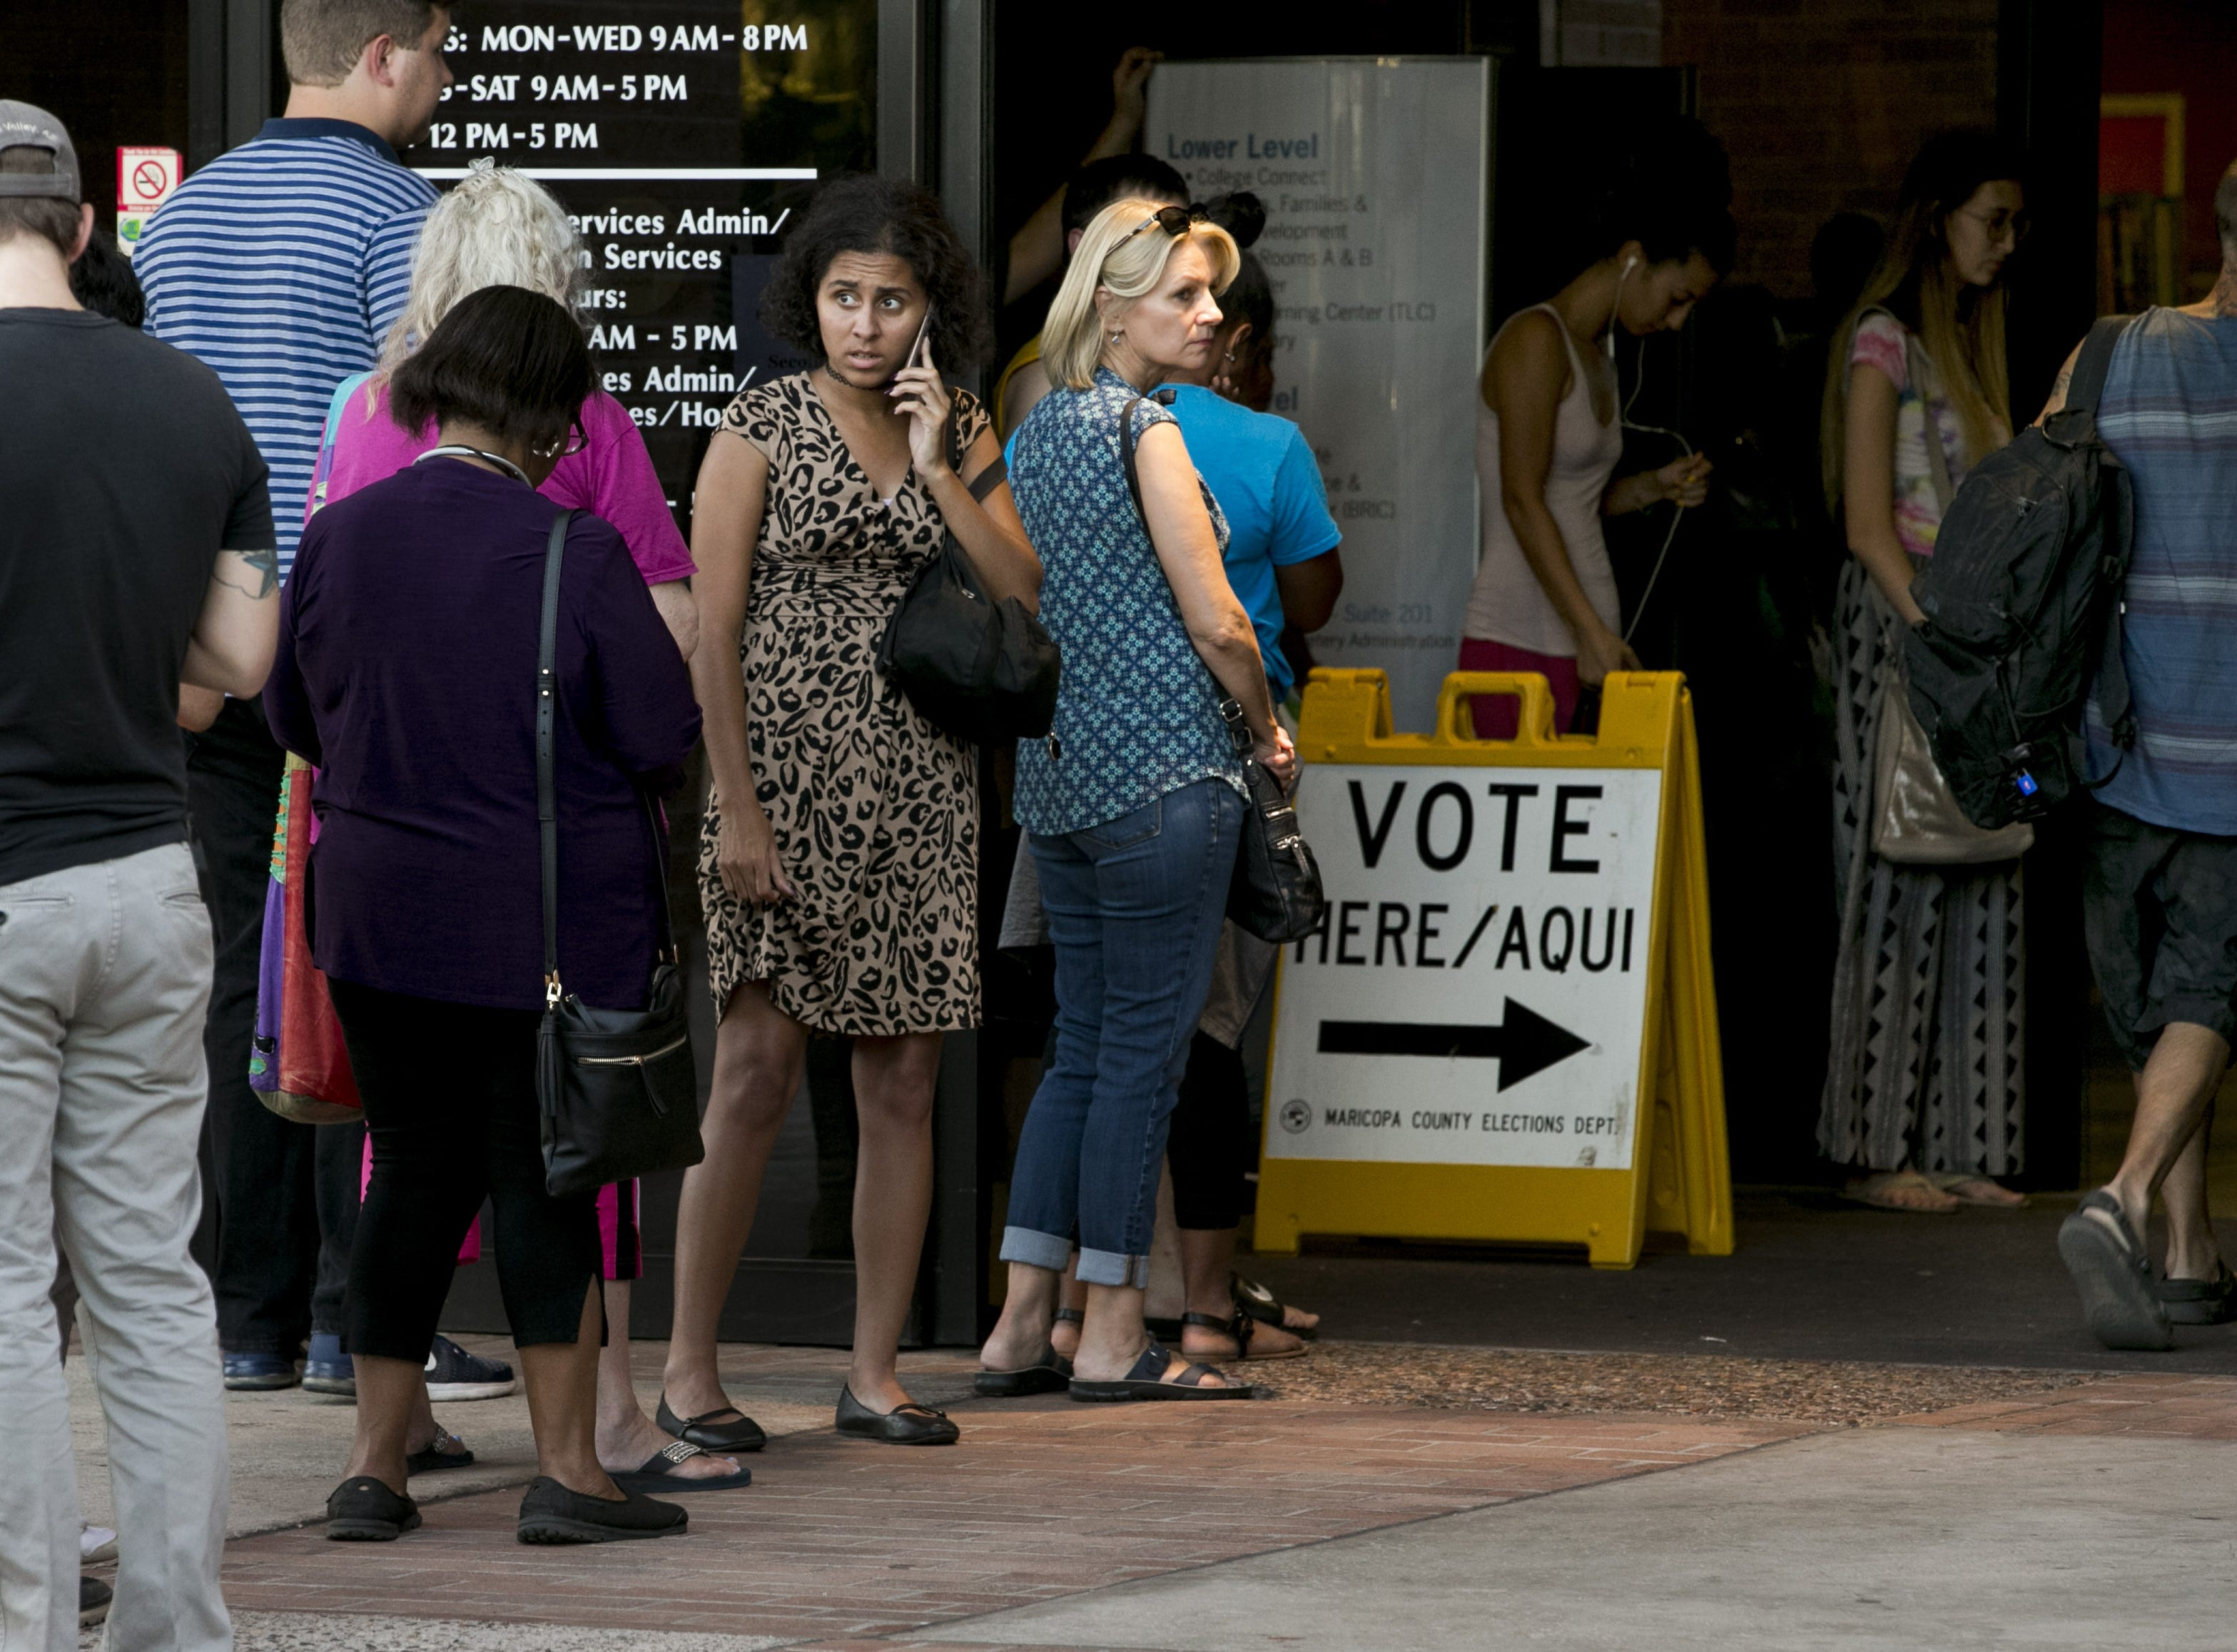 People wait in line to vote at the Tempe Public Library polling place on Aug. 28, 2018. People leaving the polling place said they waited in line for an hour.